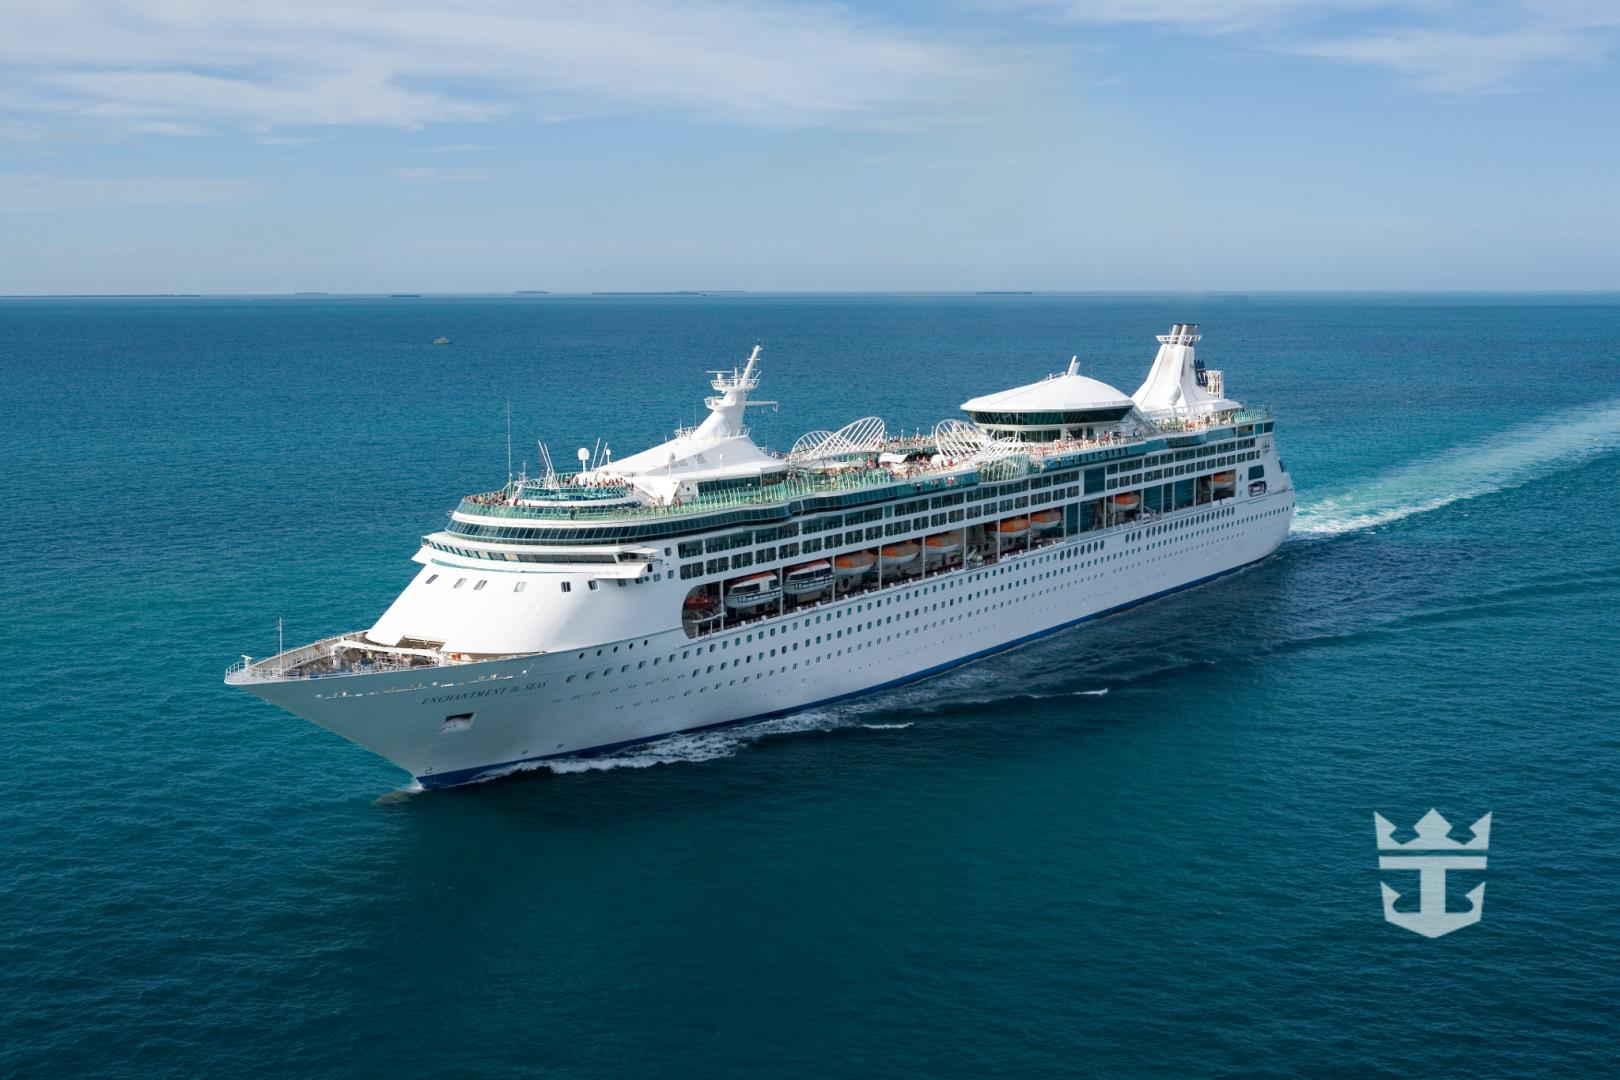 Aerial of Enchantment of the Seas